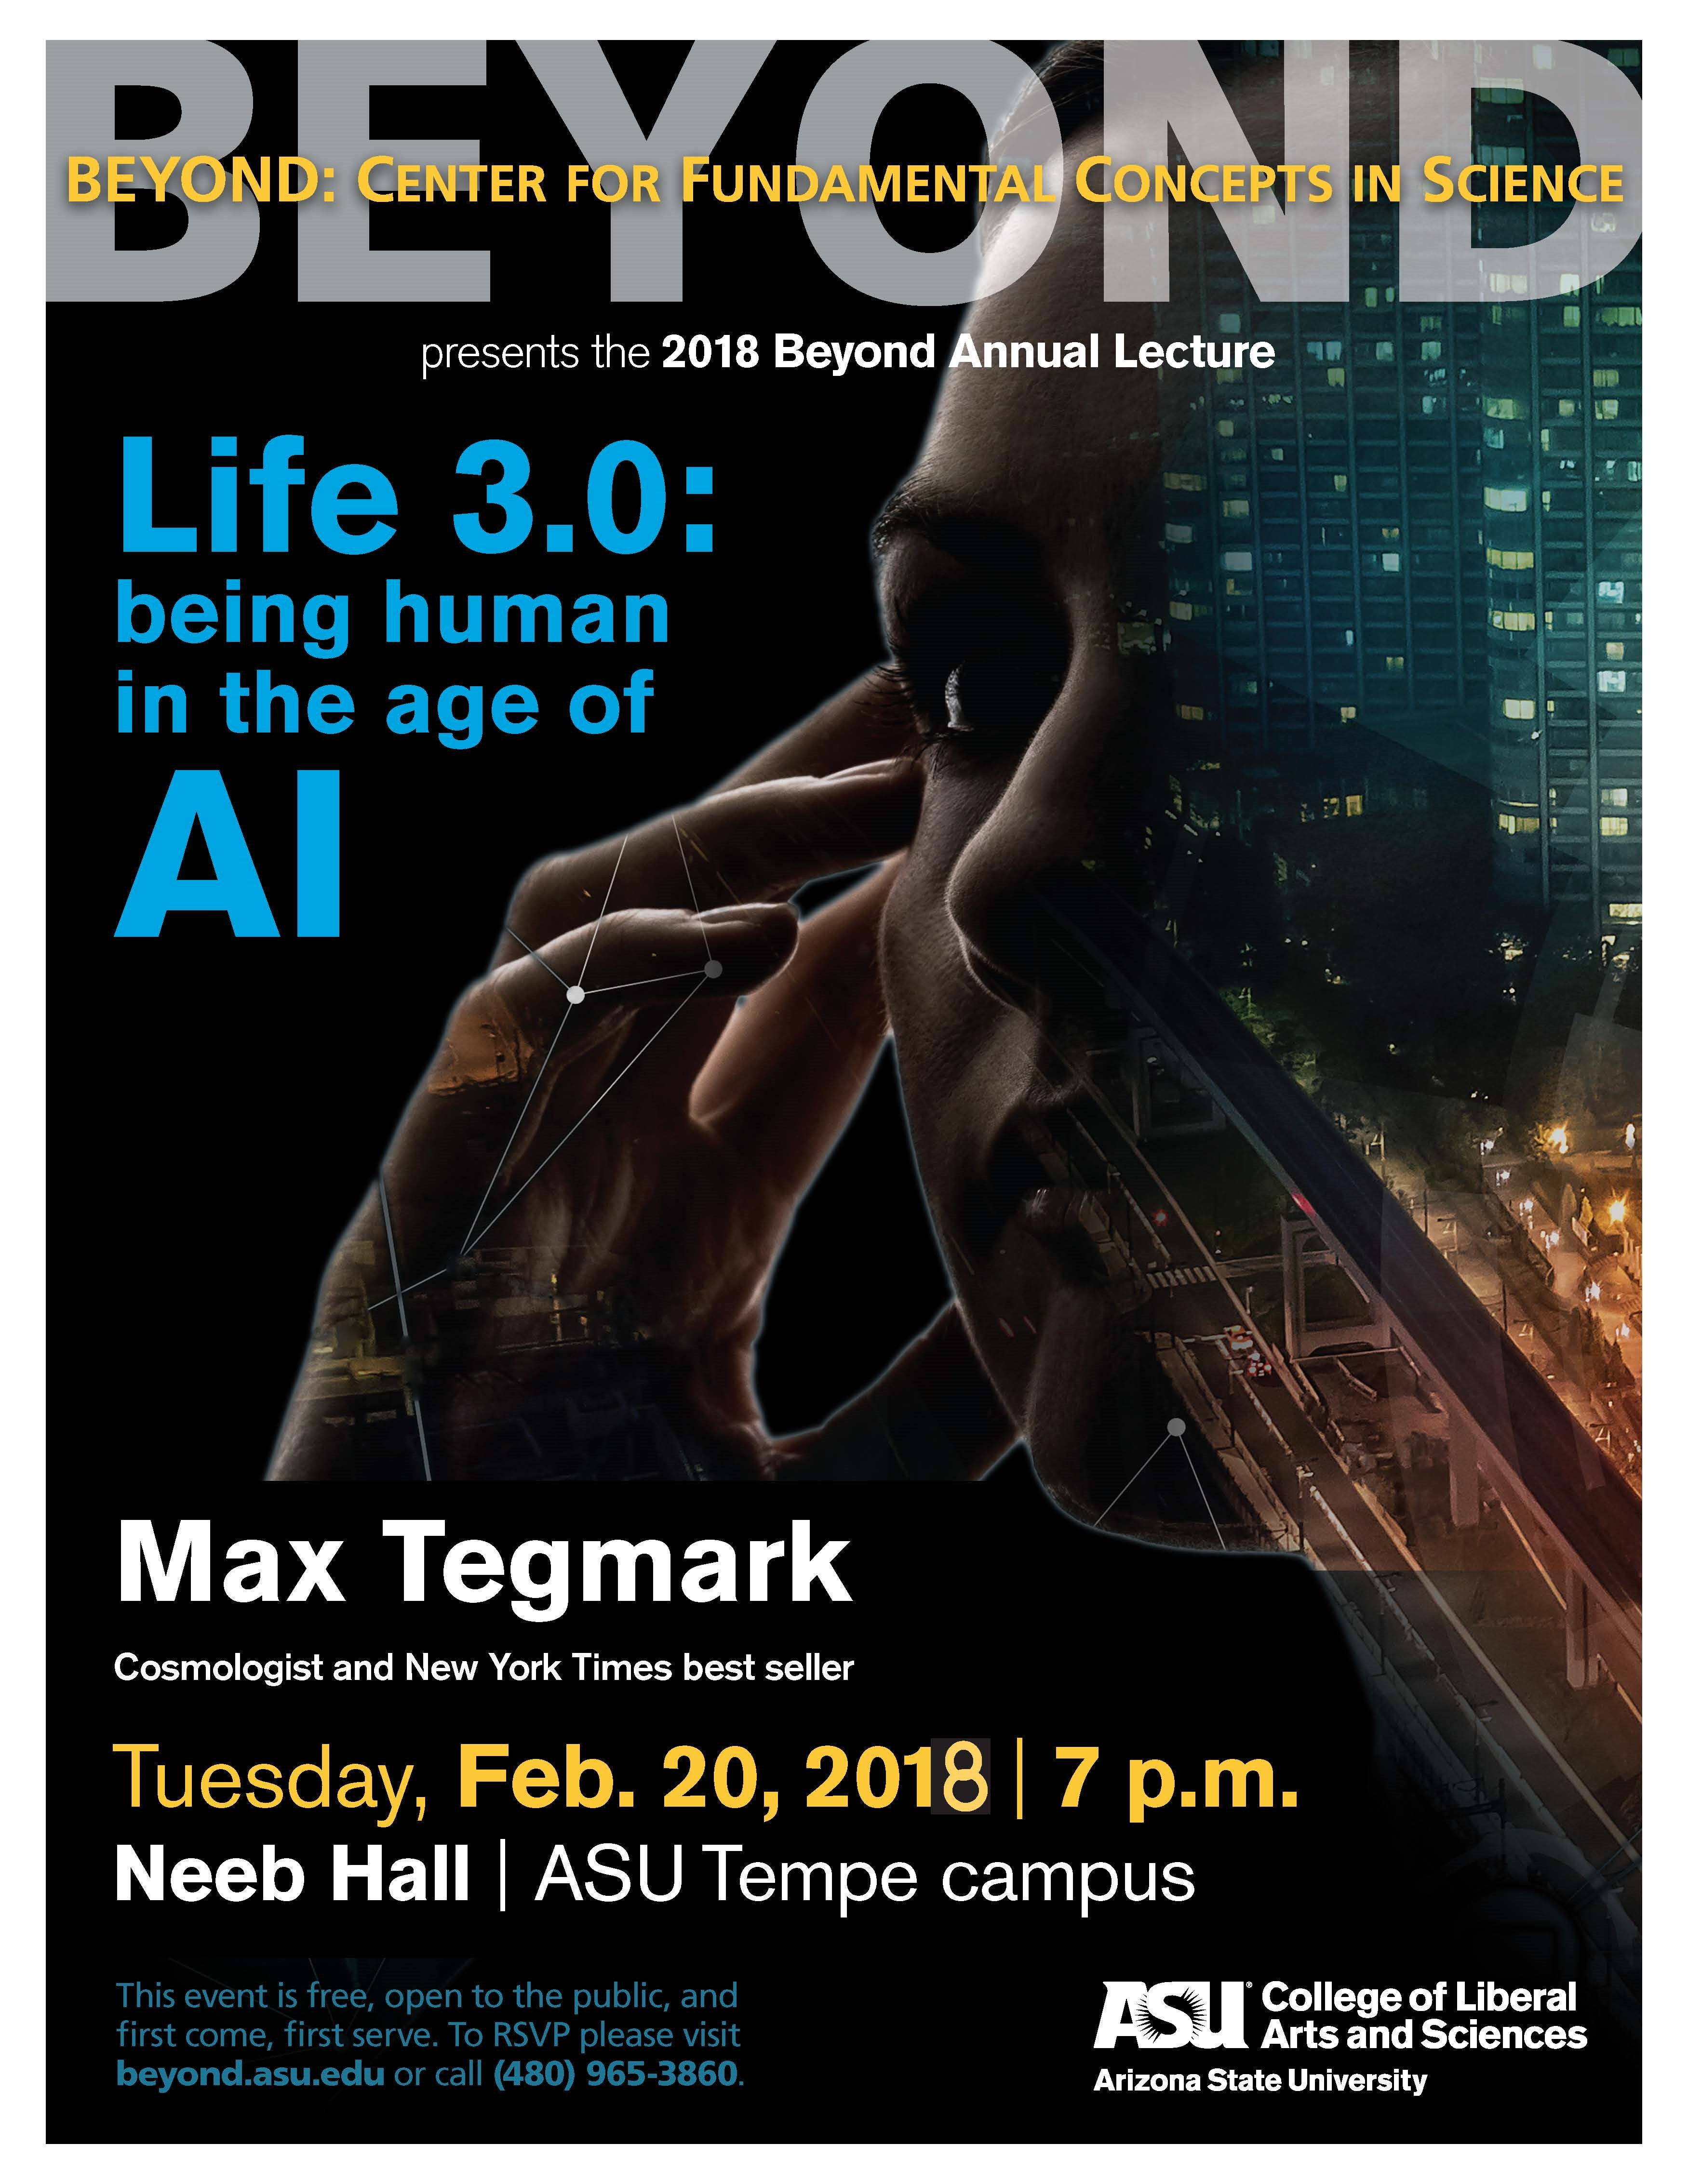 2018 Beyond Annual Lecture with Max Tegmark | ASU Events